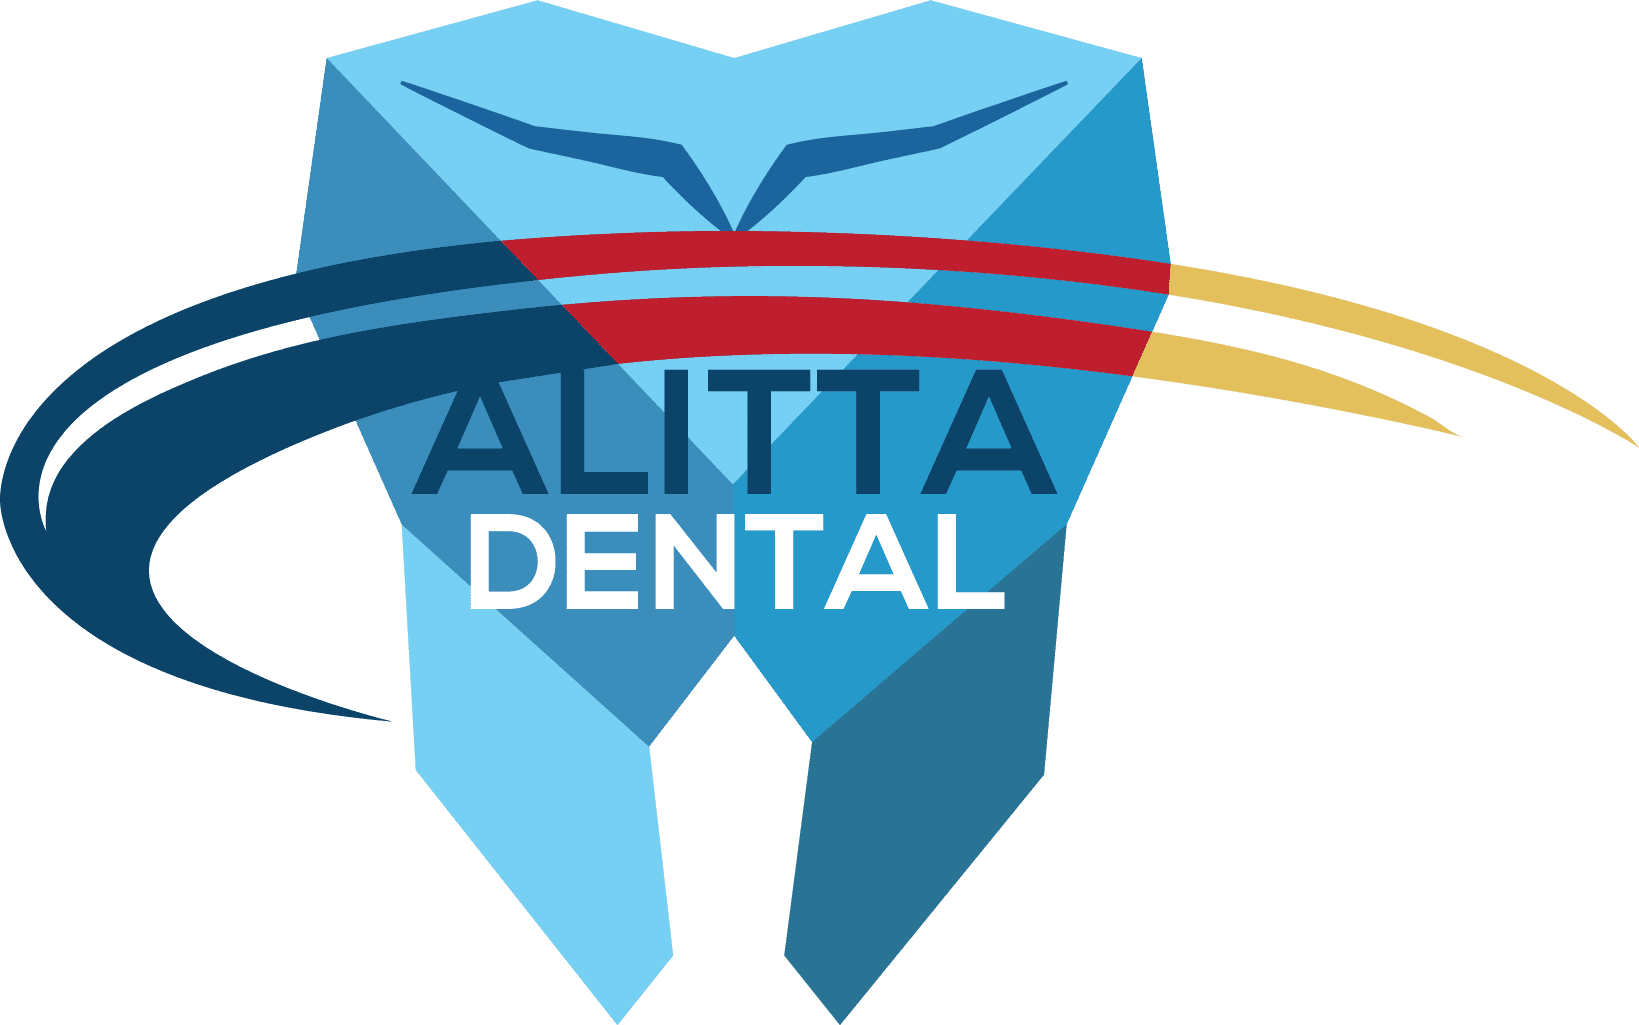 37457022_Alitta-Dental_FINAL